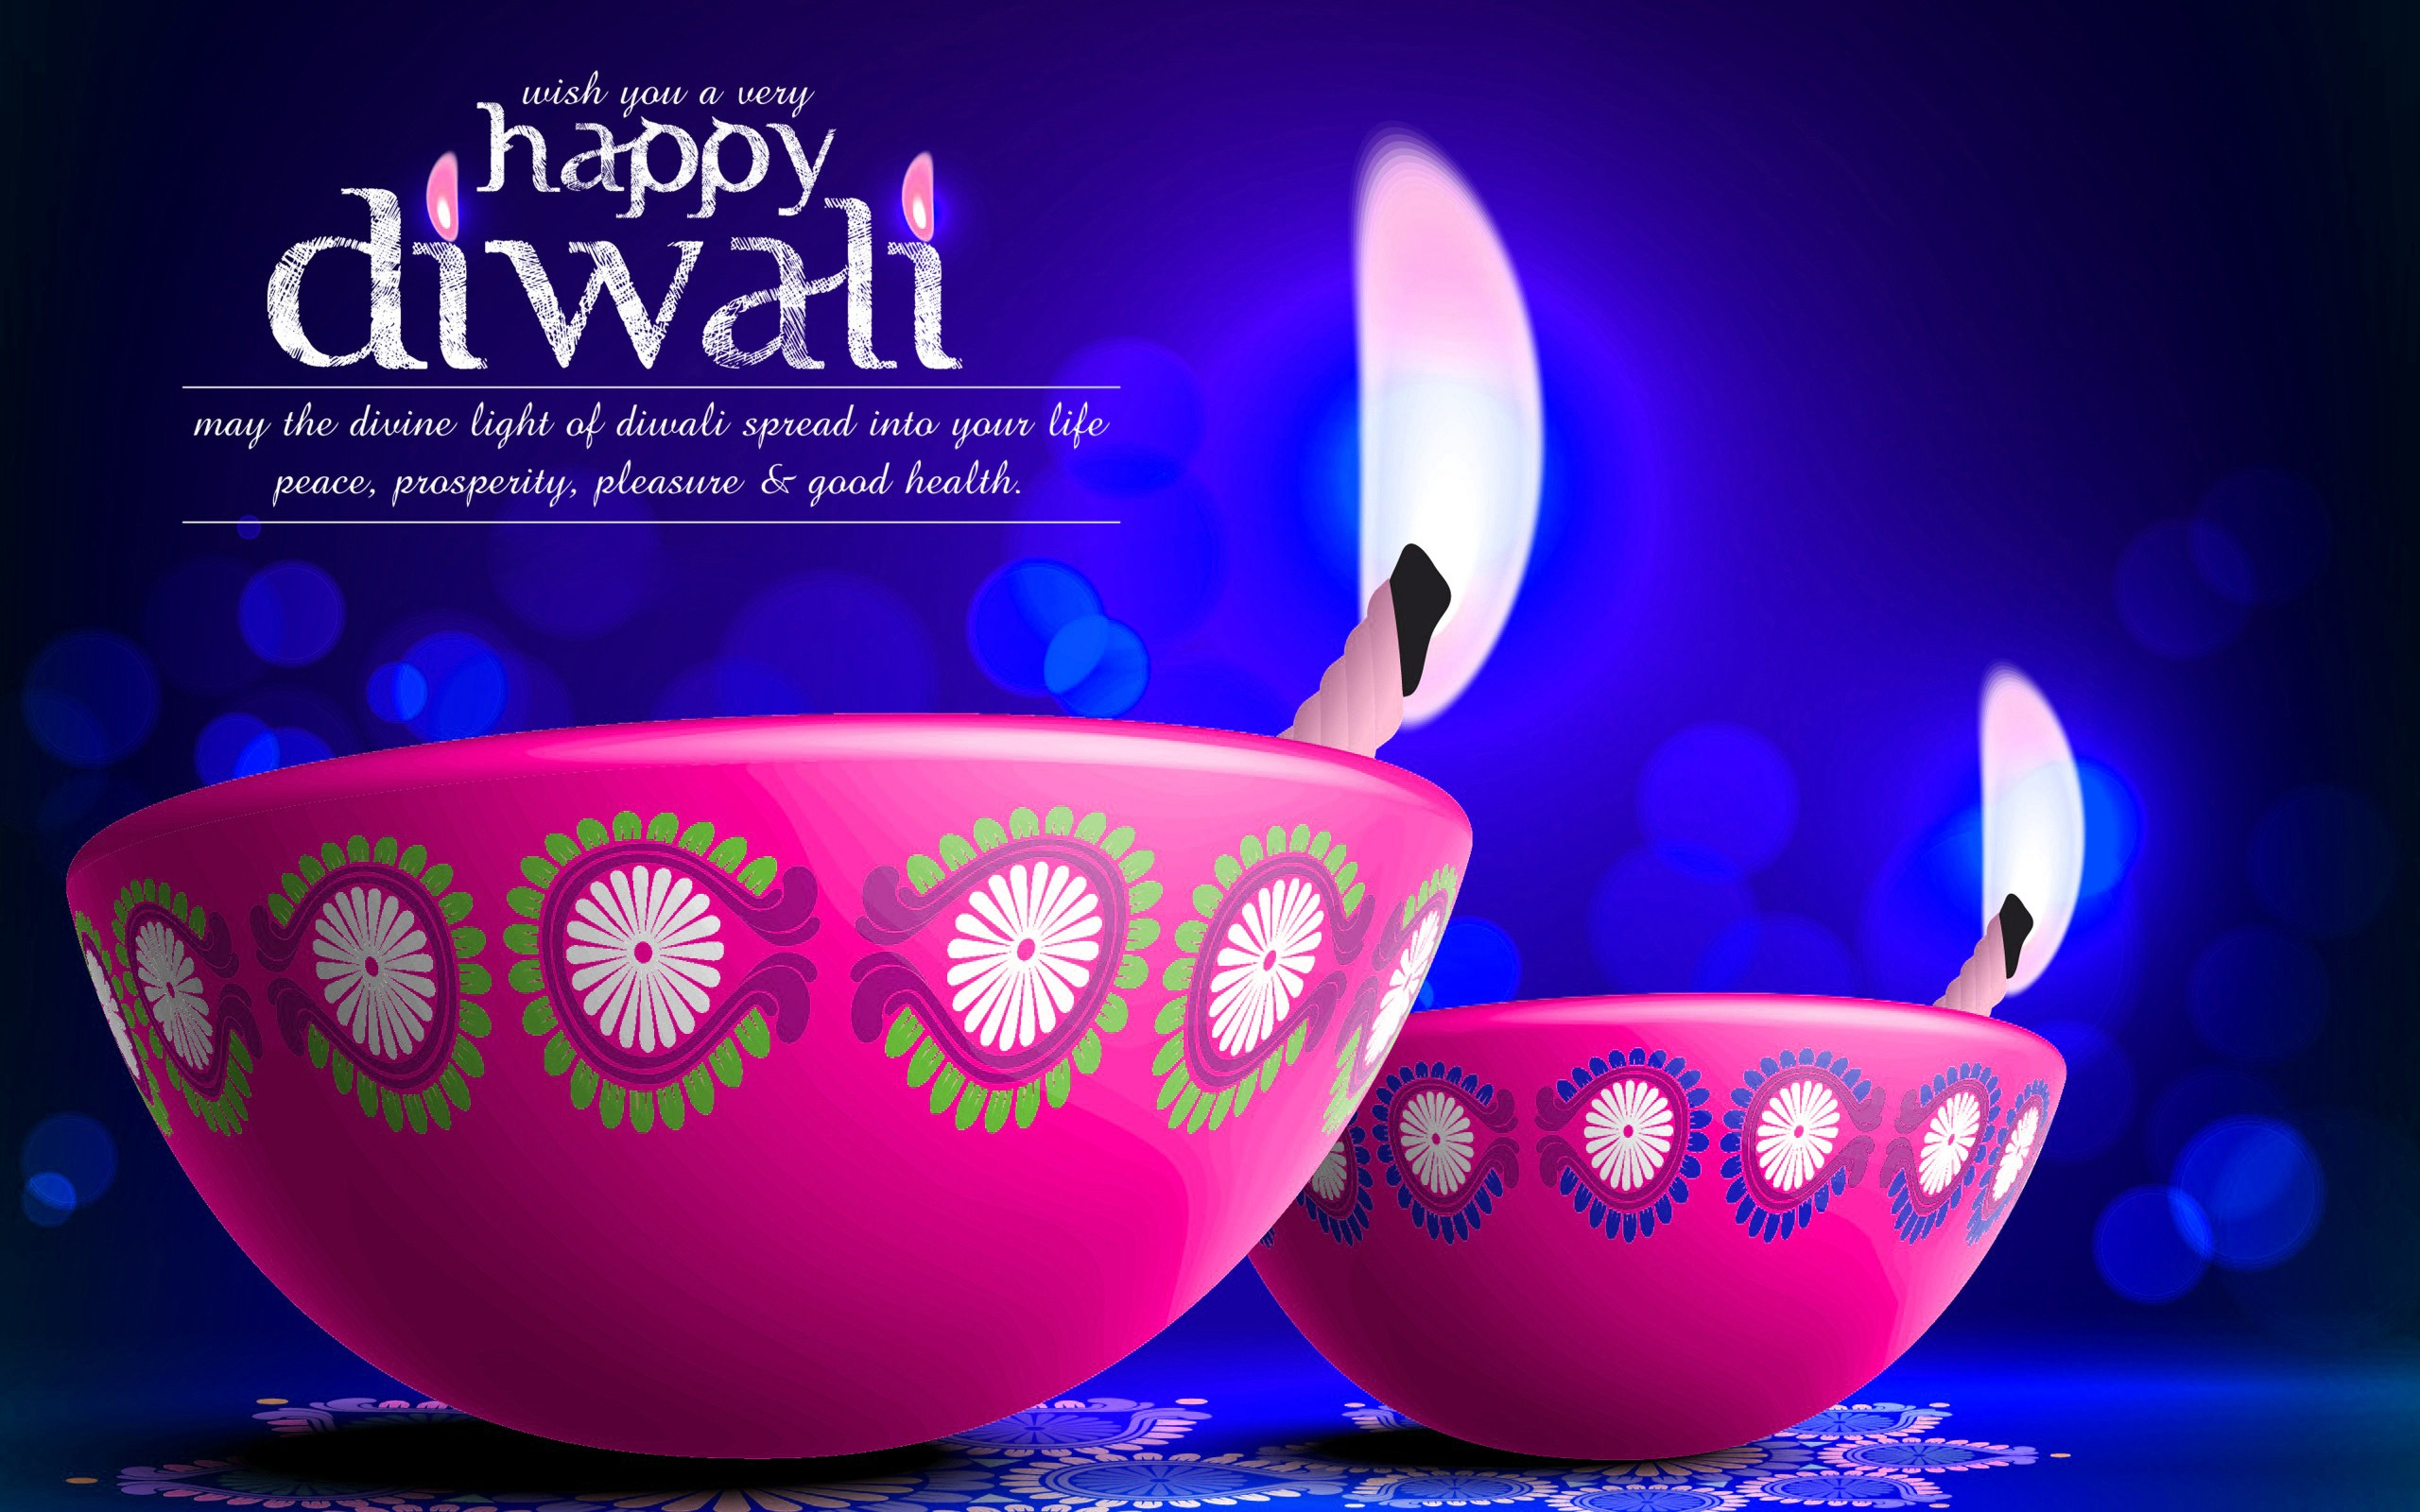 Happy diwali 2017 images quotes wishes sms greetings messages happy diwali 2017 images quotes wishes sms greetings messages pictures photos and wallpapers kristyandbryce Gallery